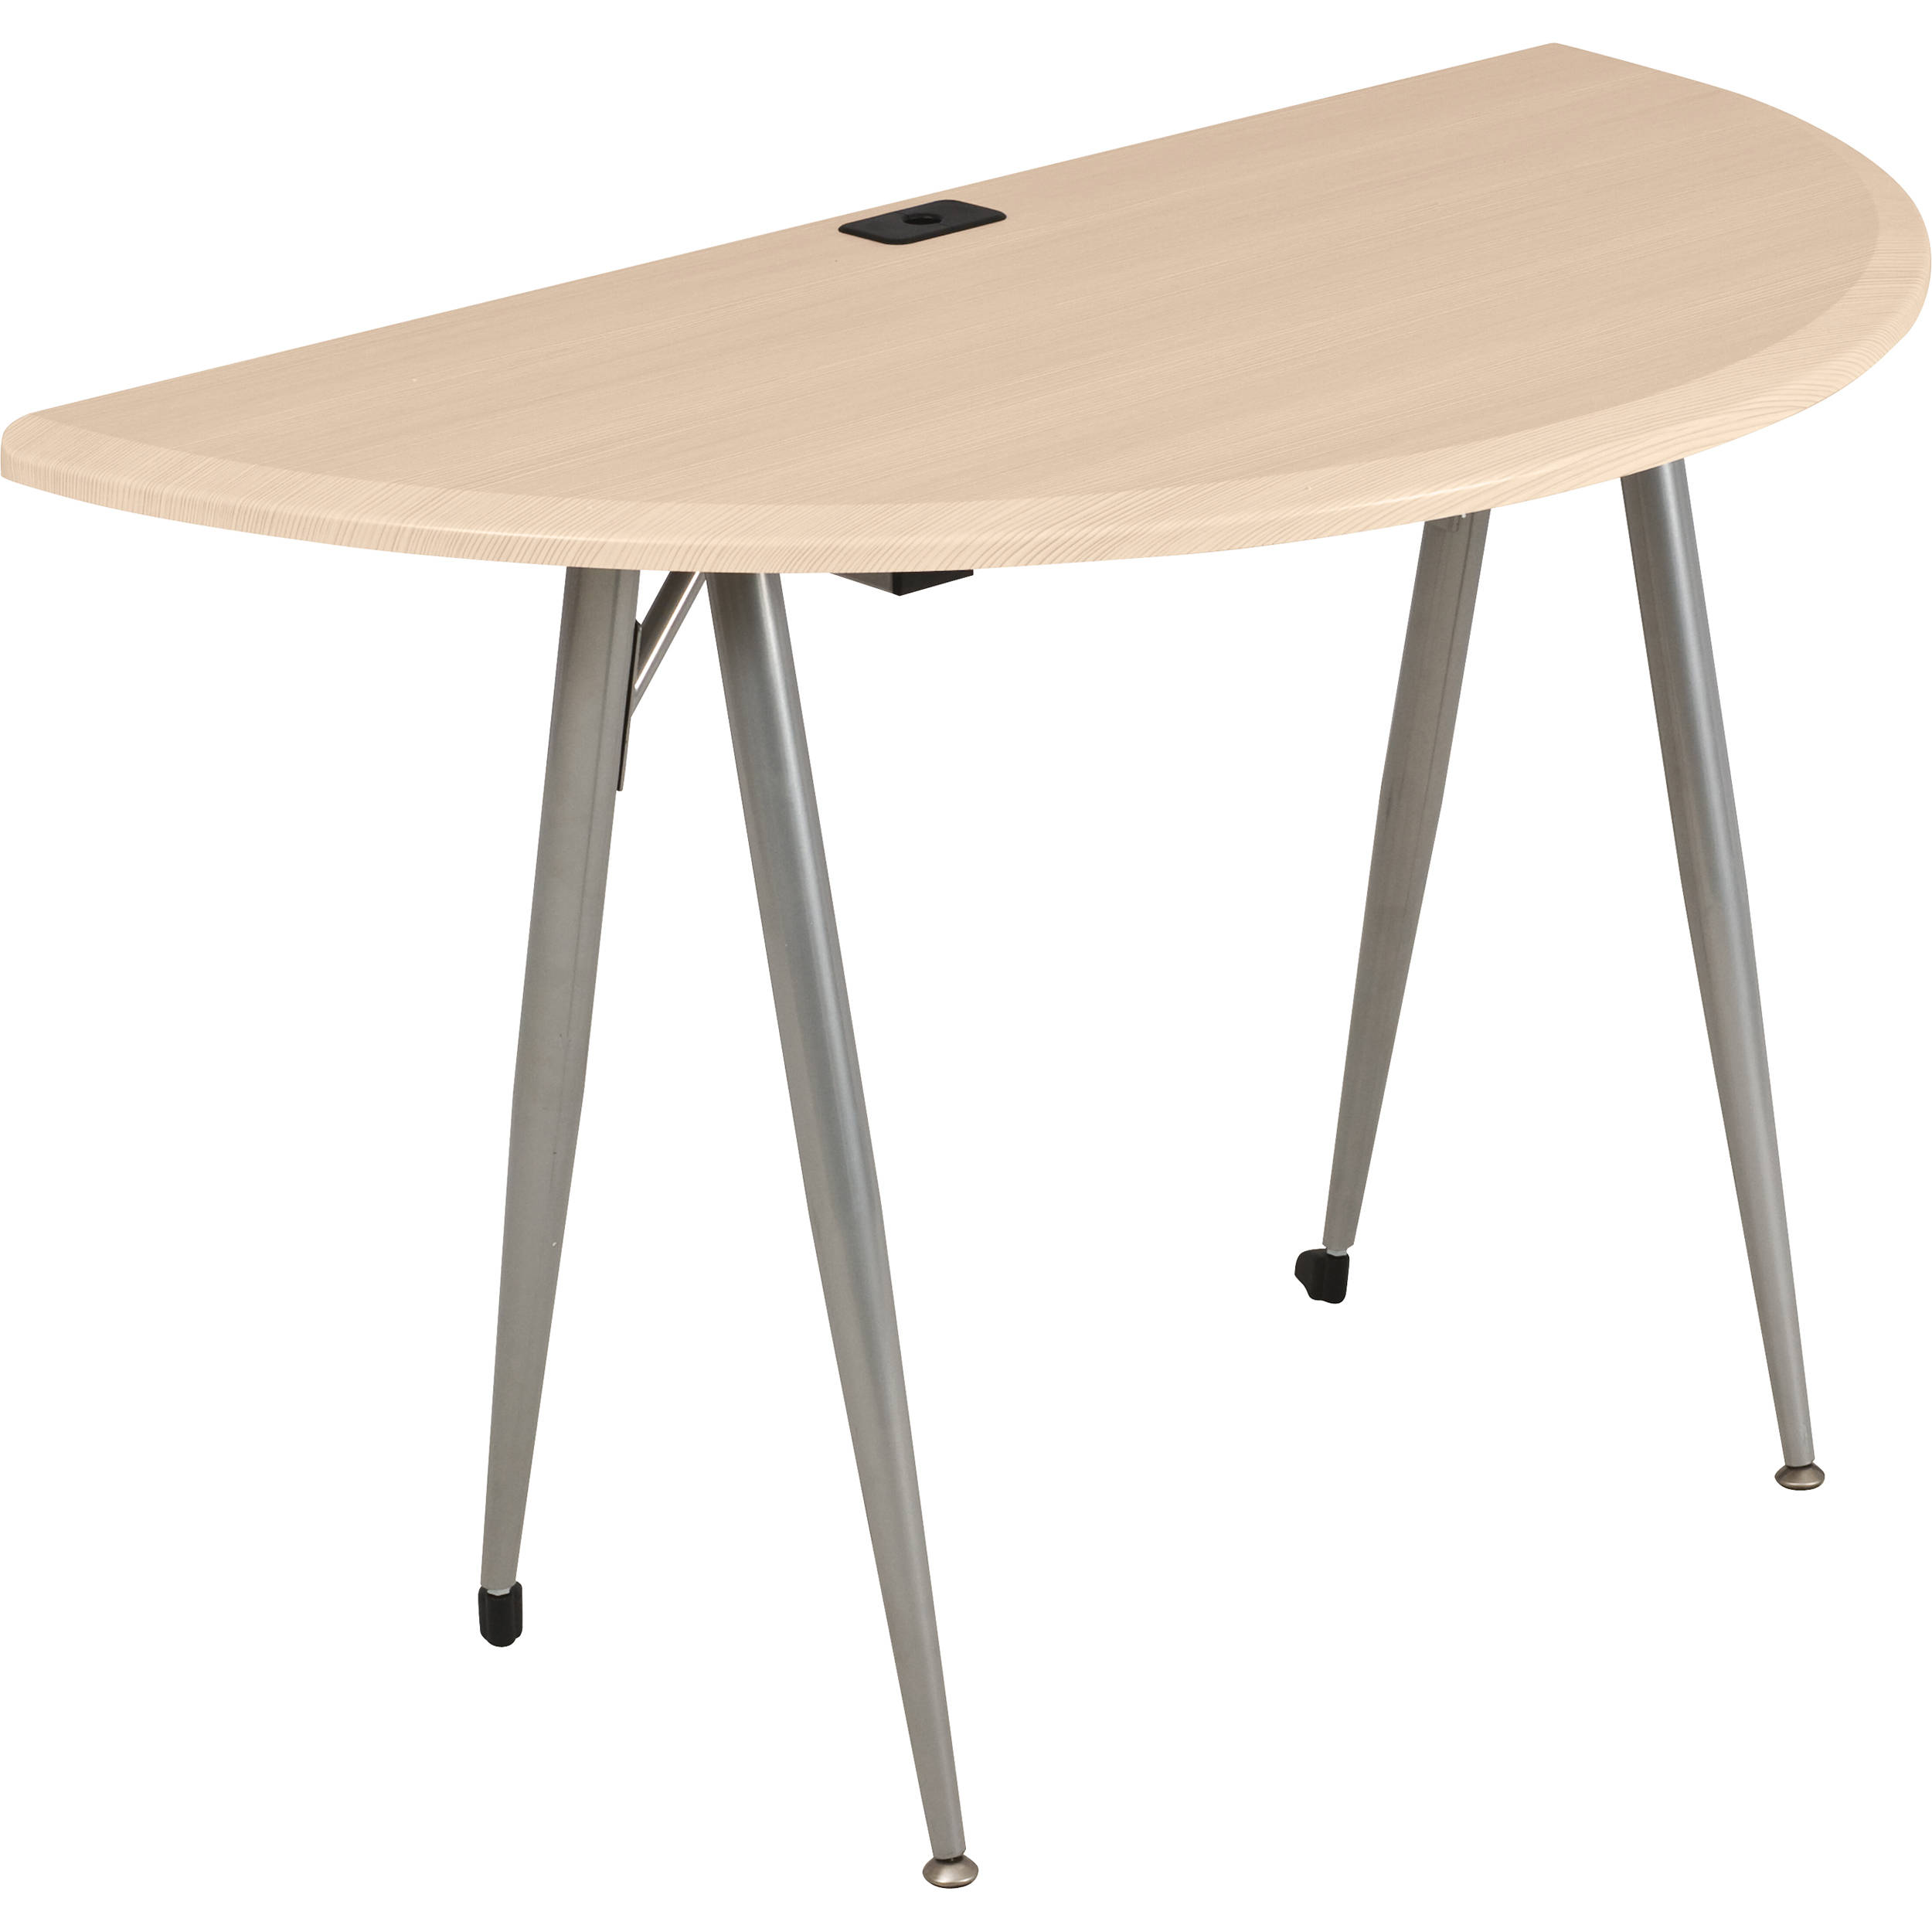 Balt iFlex Small Desk (Half Round, Teak) 90057 B&H Photo Video